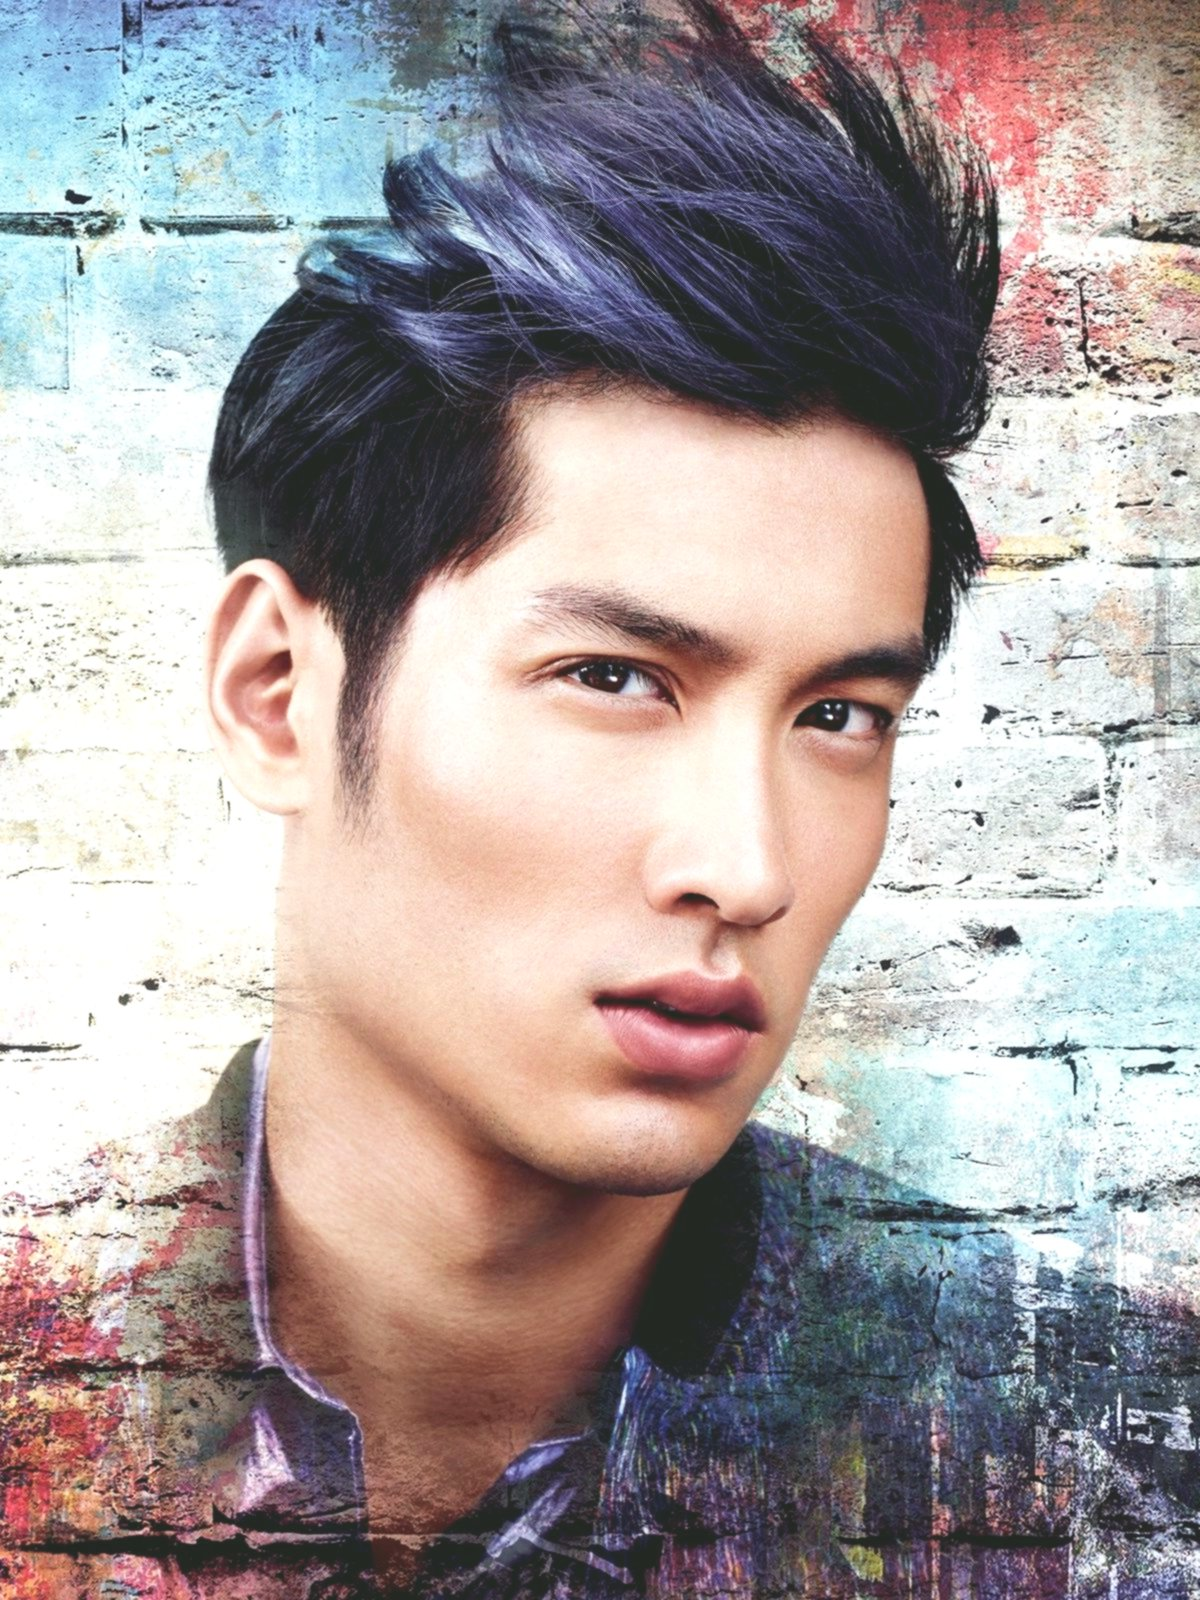 Outstanding Hair Styles Men's 2018 Portrait Stylish Hairstyle Trends Men's 2018 Gallery